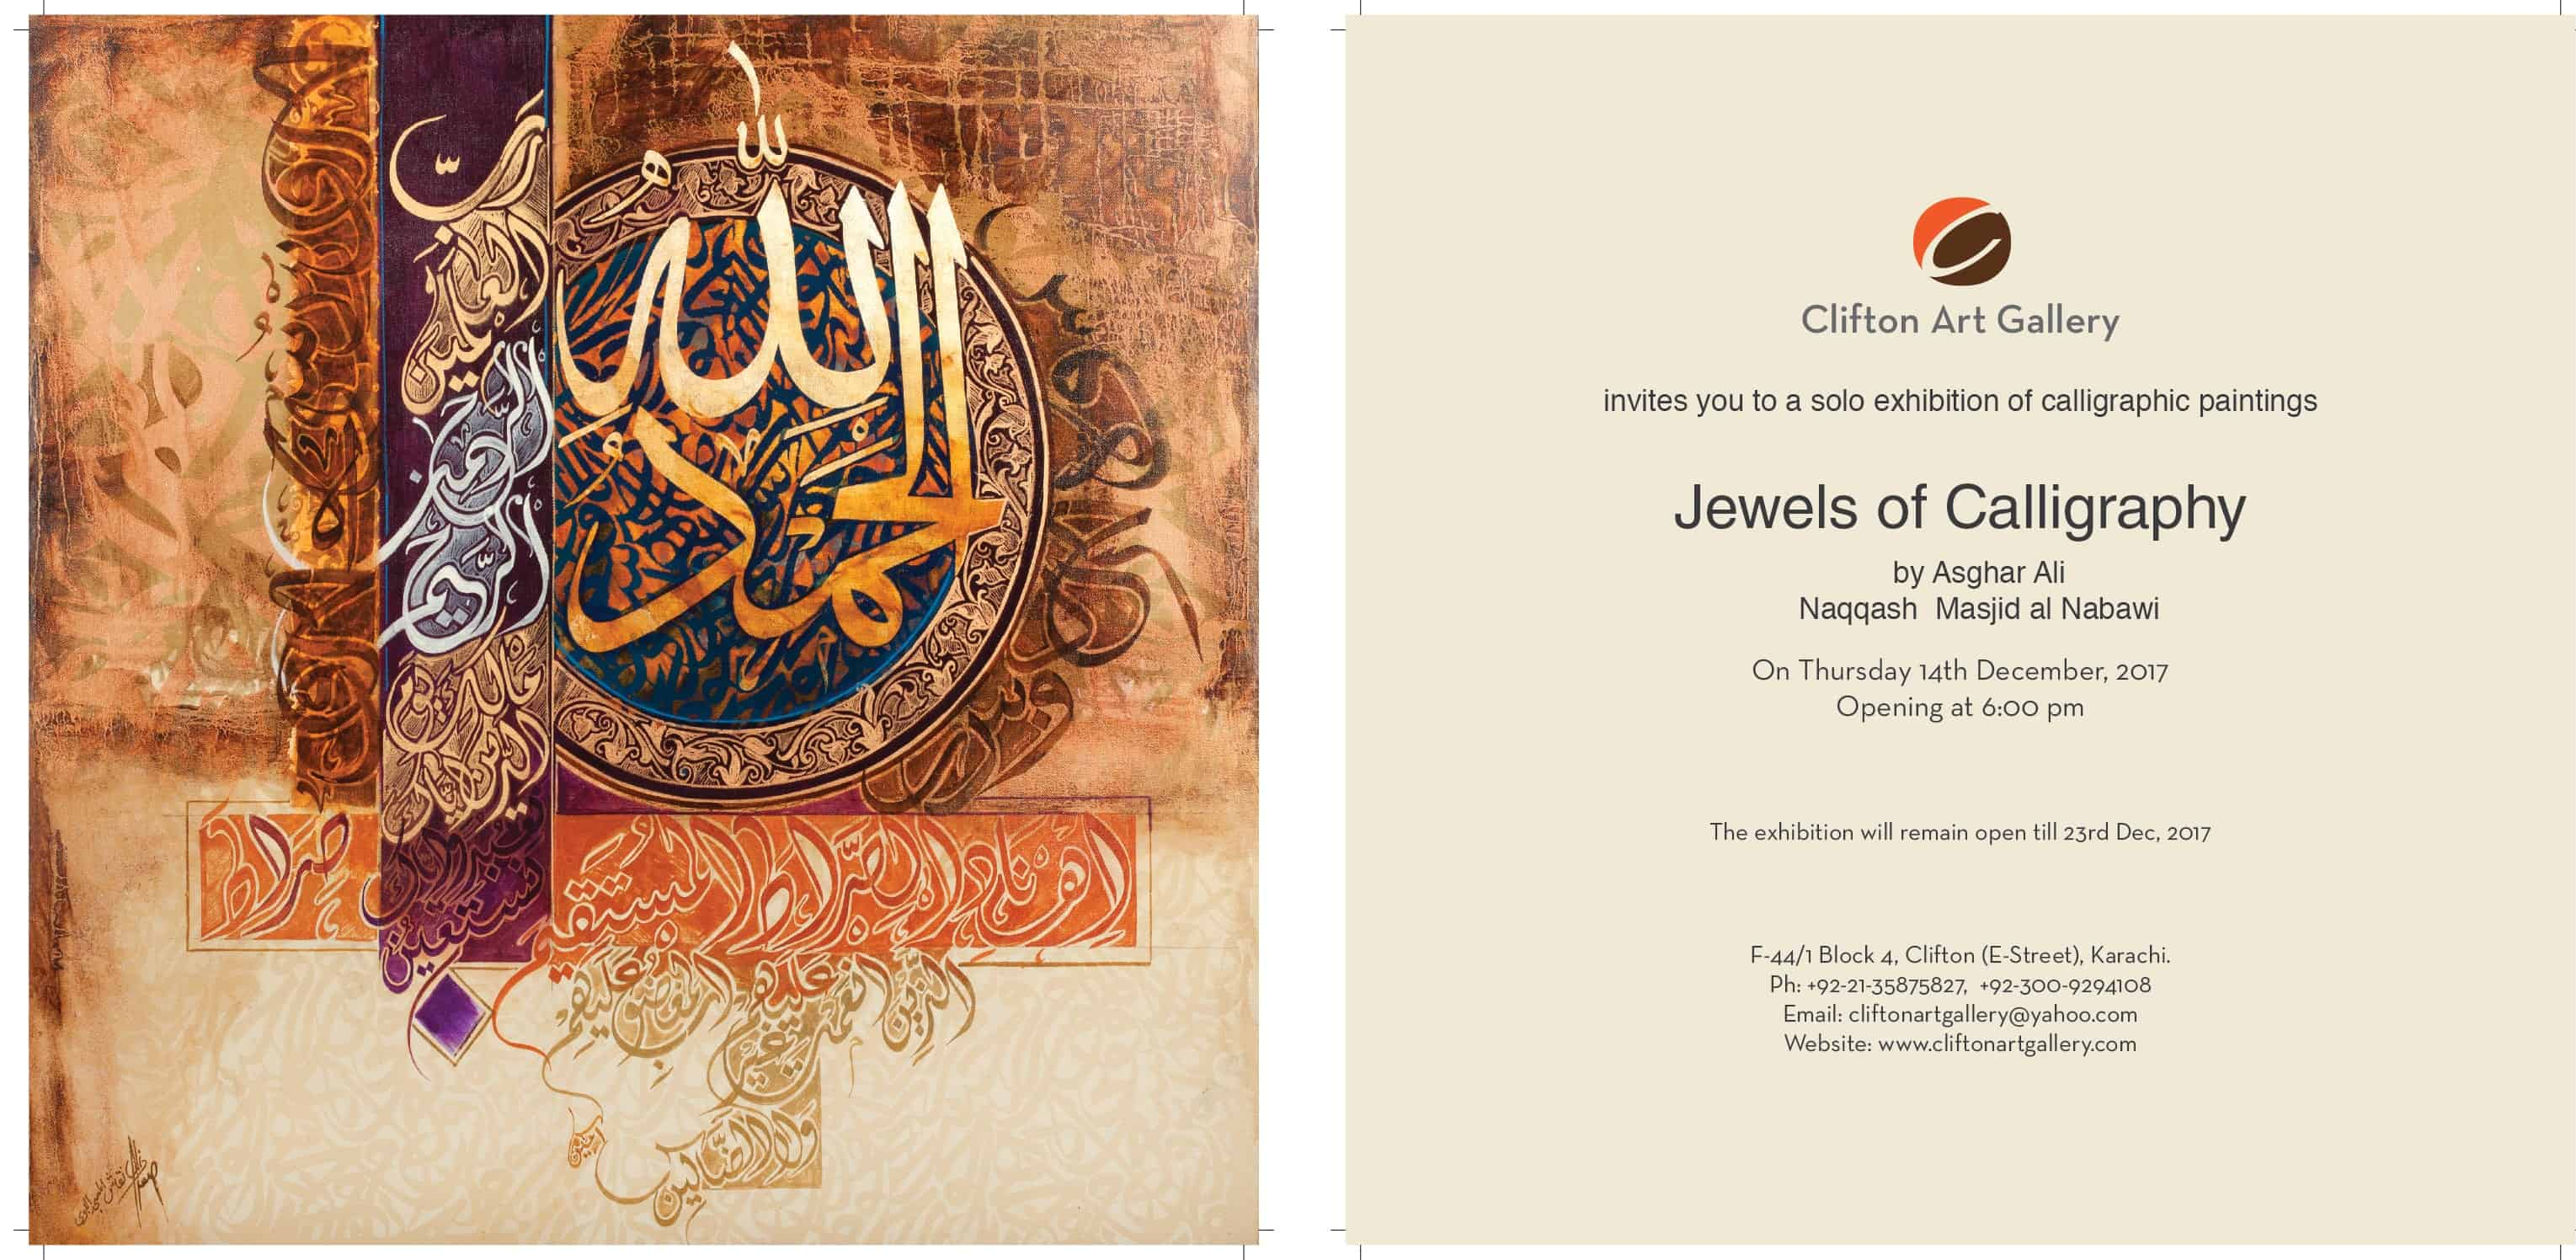 Asghar Ali Calligraphy Painting Exhibition at Clifton Art Gallery Karachi